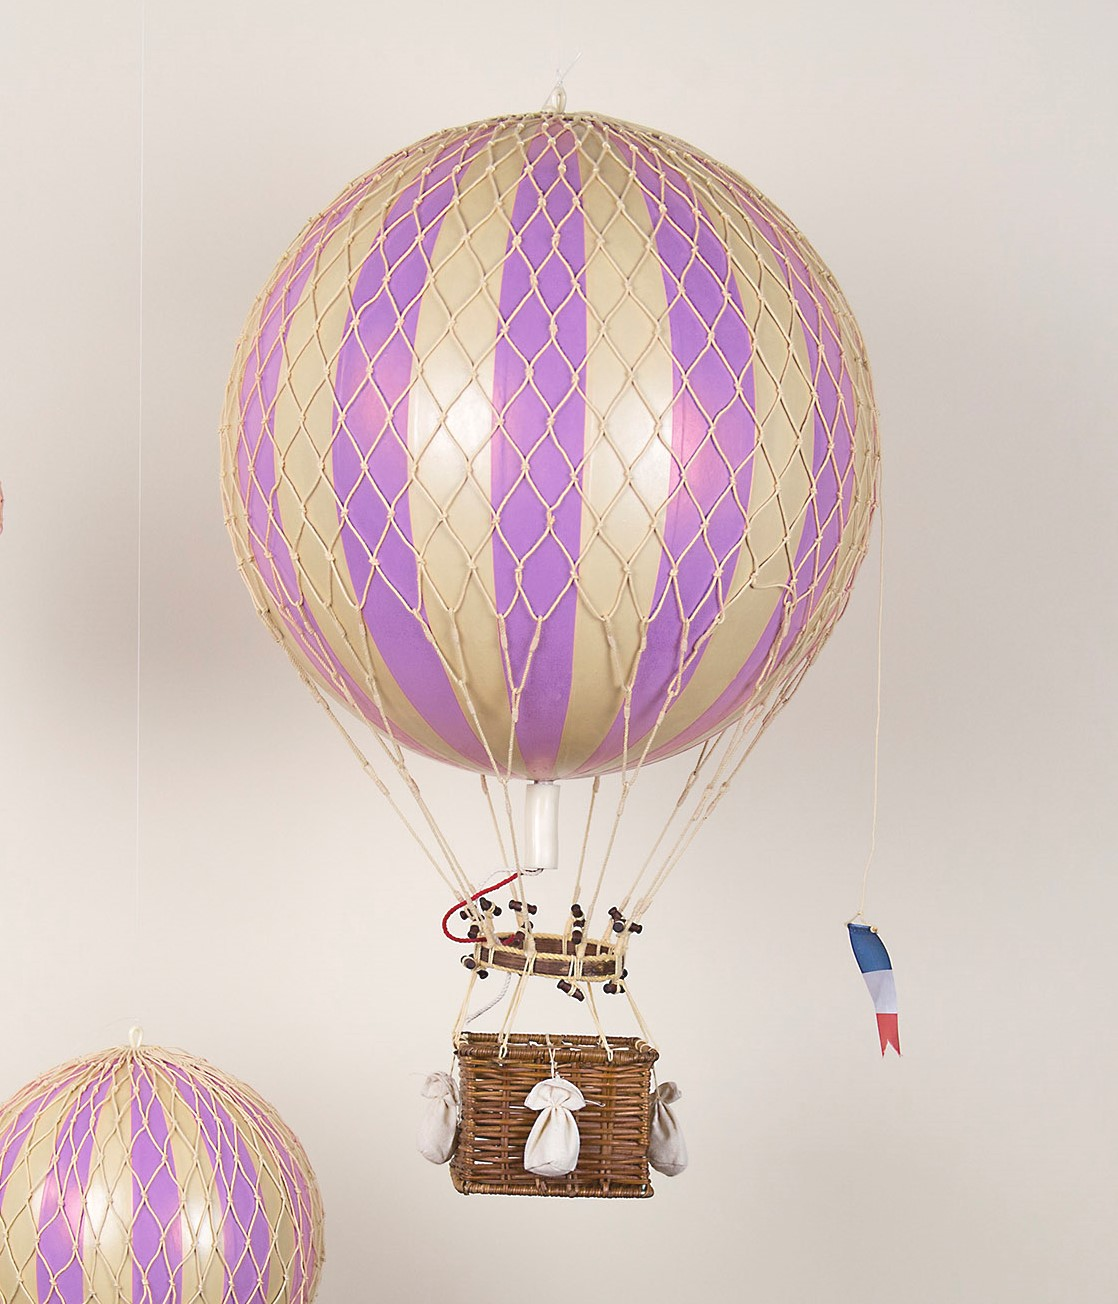 Vintage Hot Air Balloon – Lilac